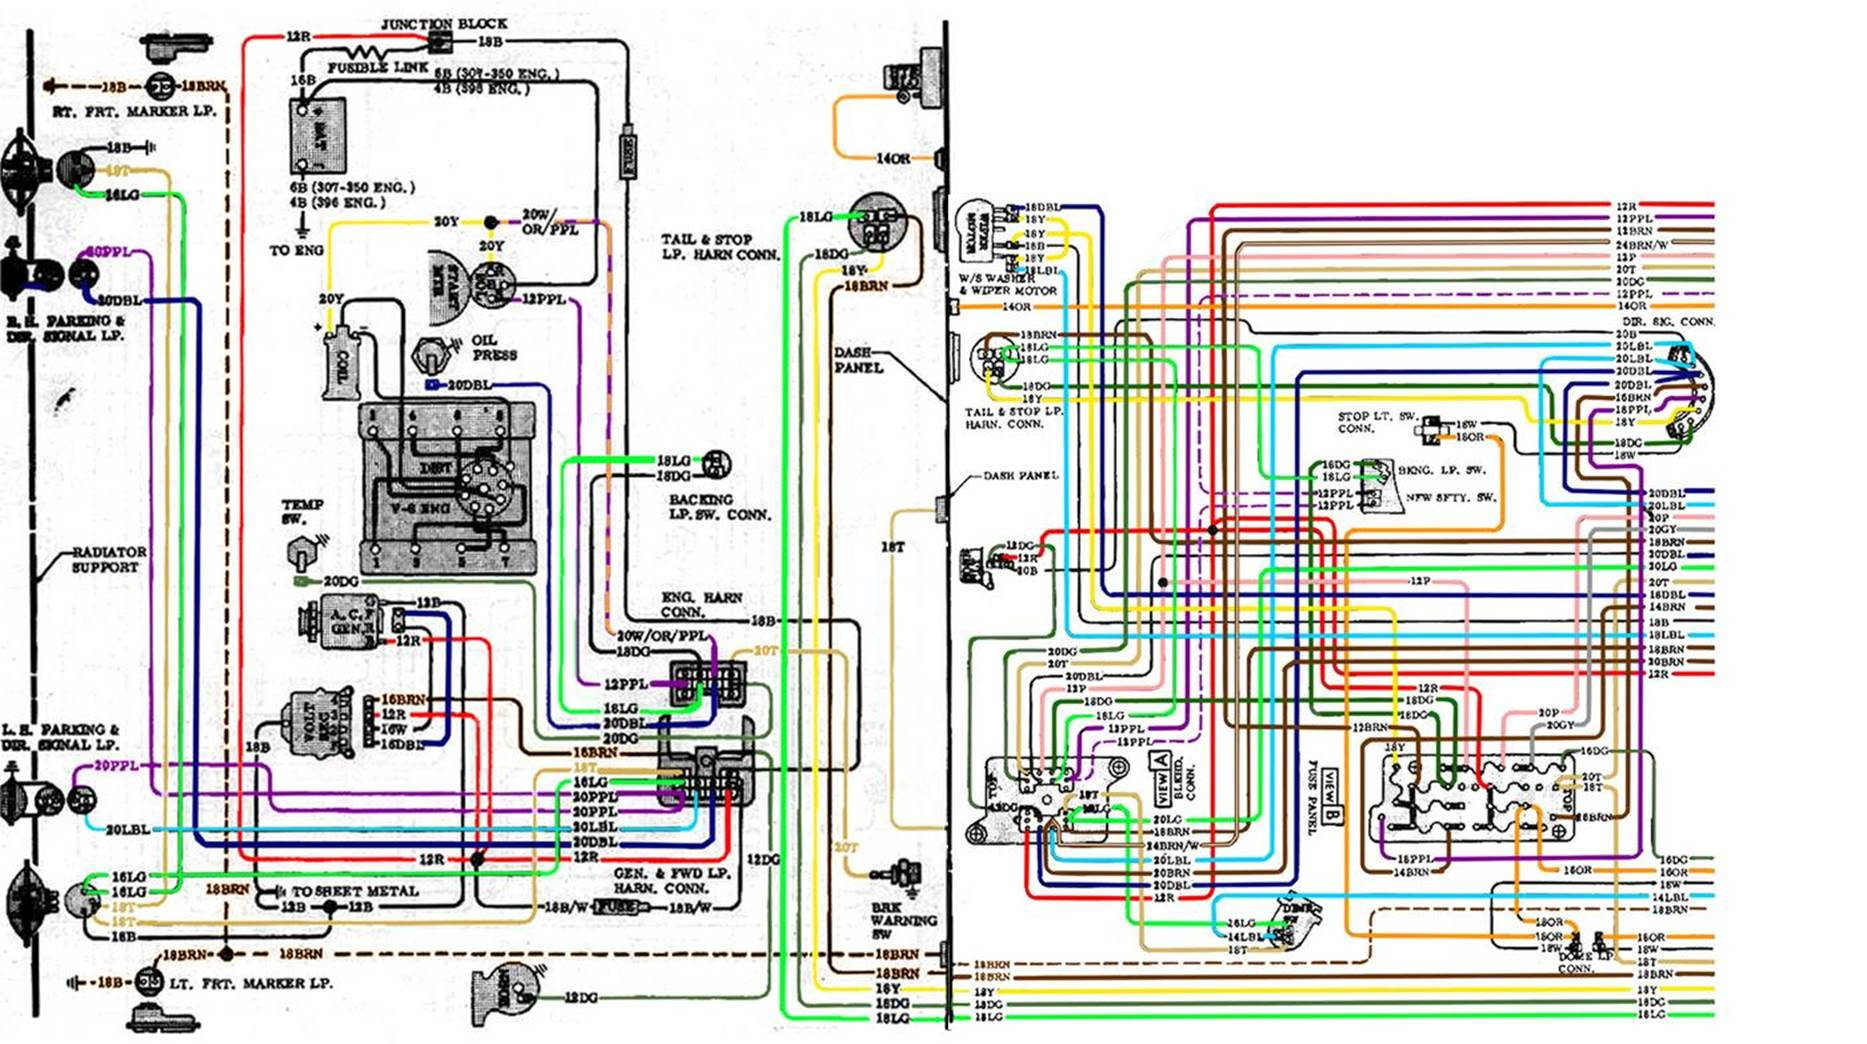 image002 67 72 chevy wiring diagram chevy wiring schematics at bayanpartner.co